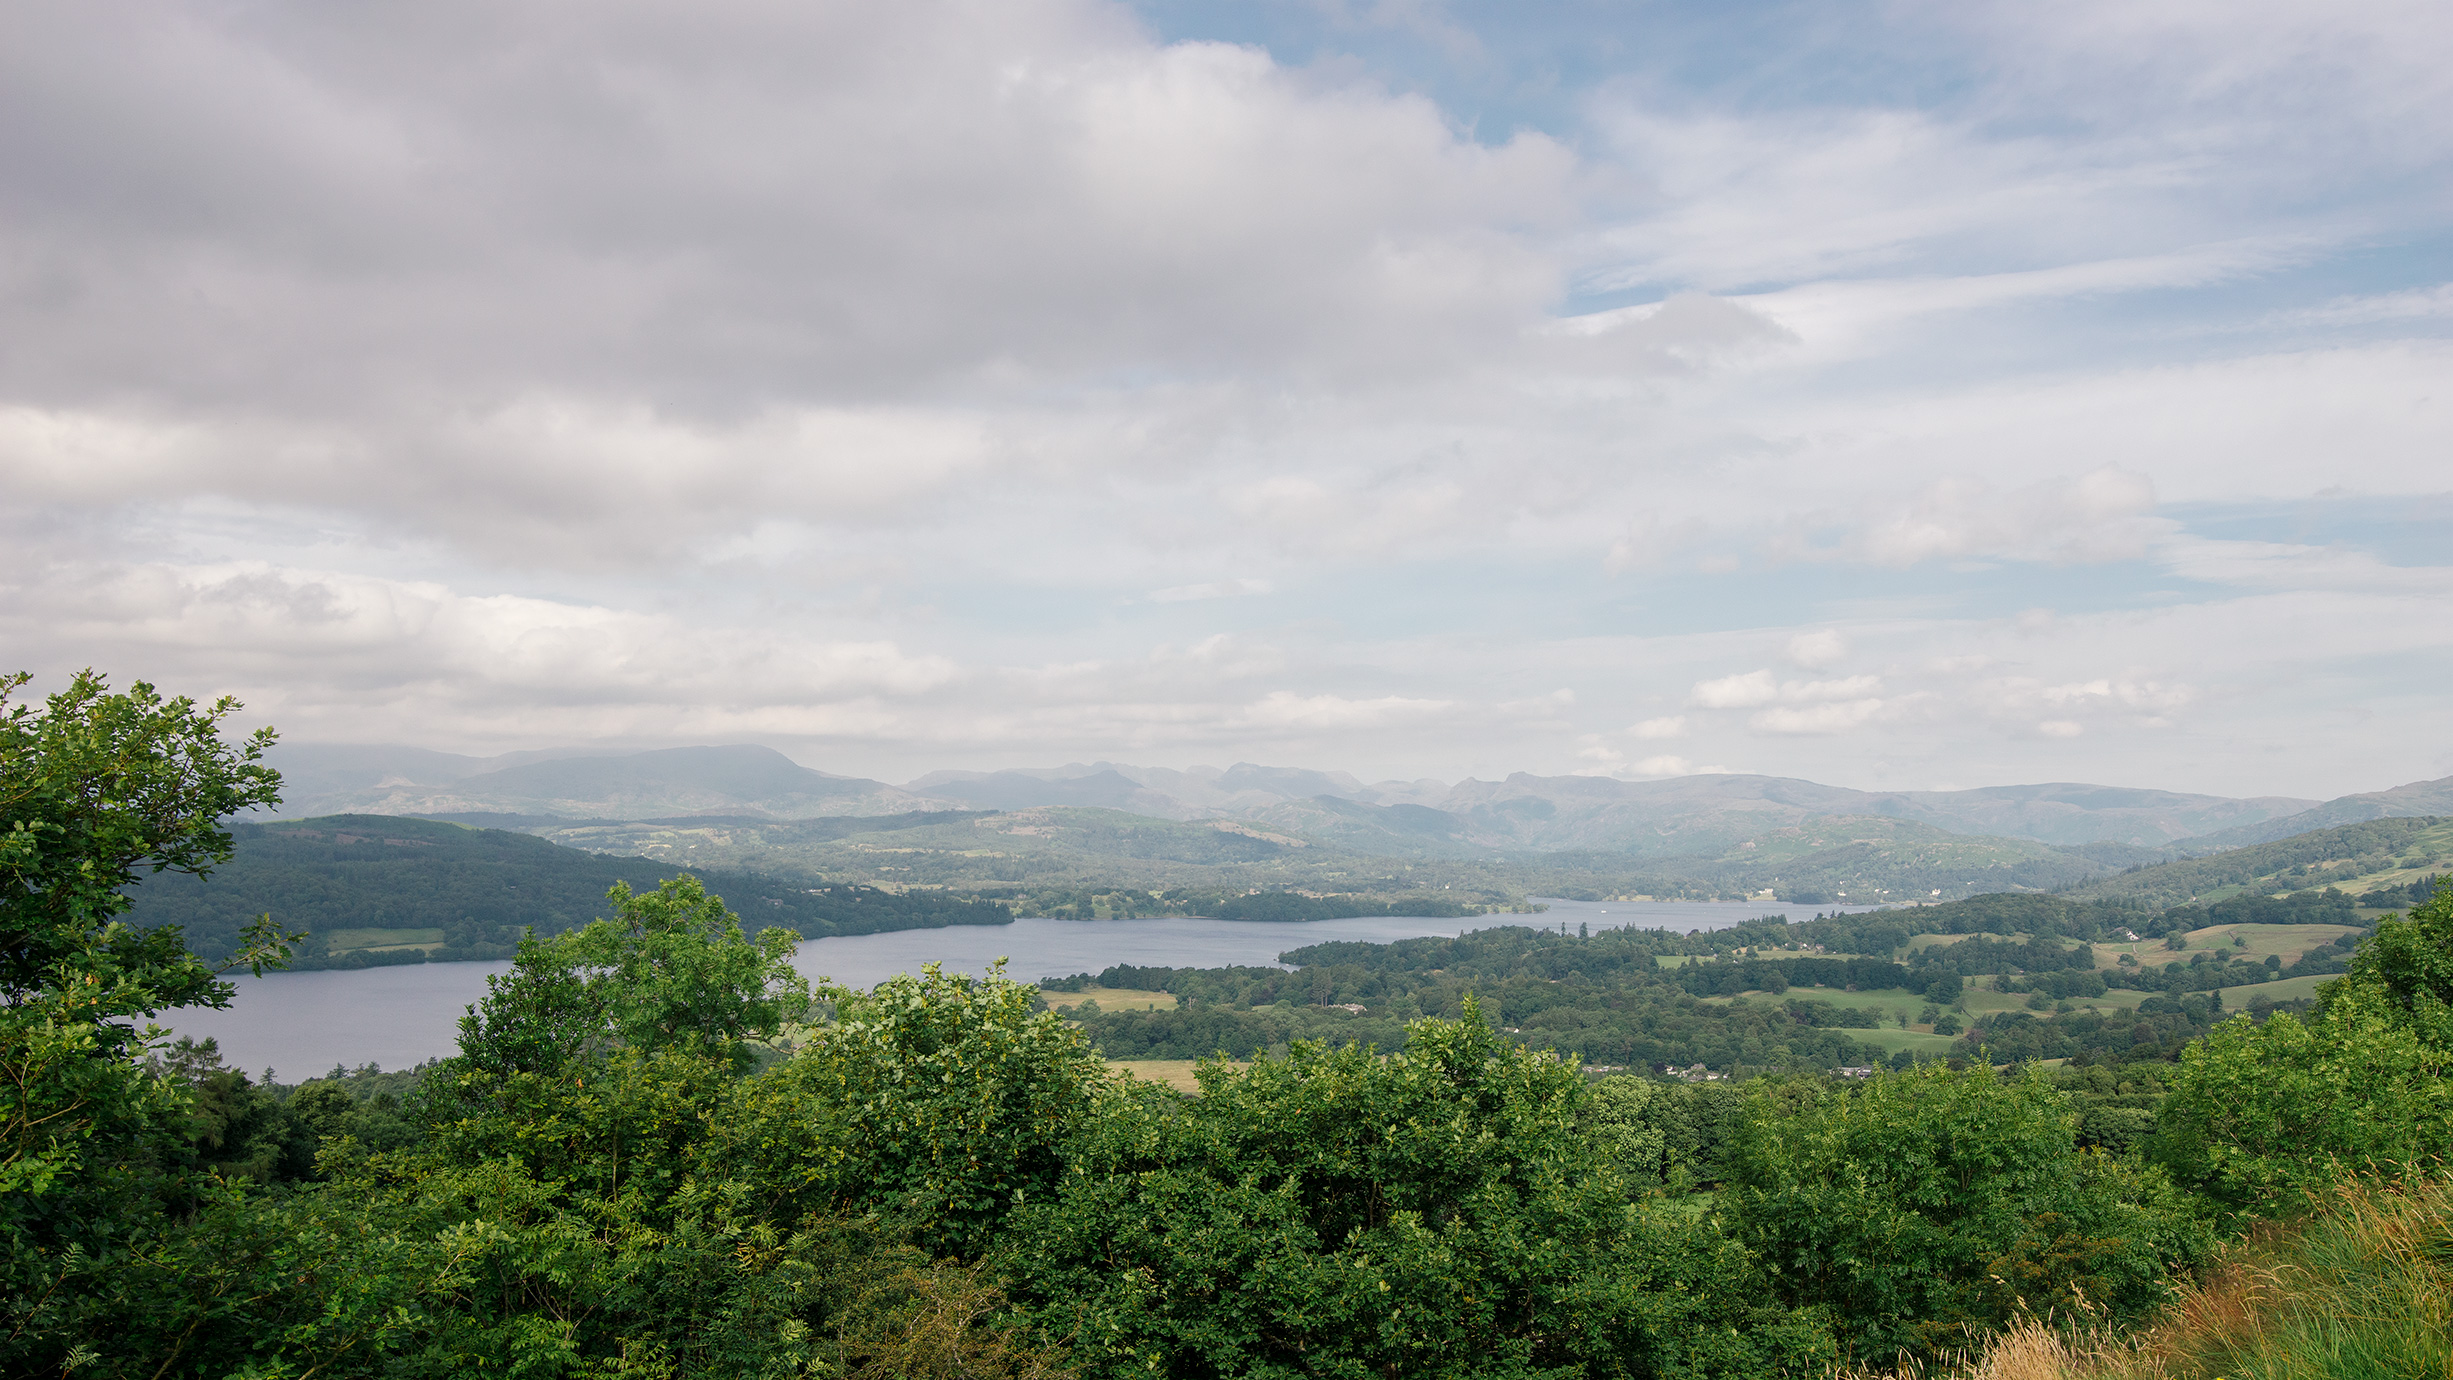 View of Windermere, Lake District, United Kingdom